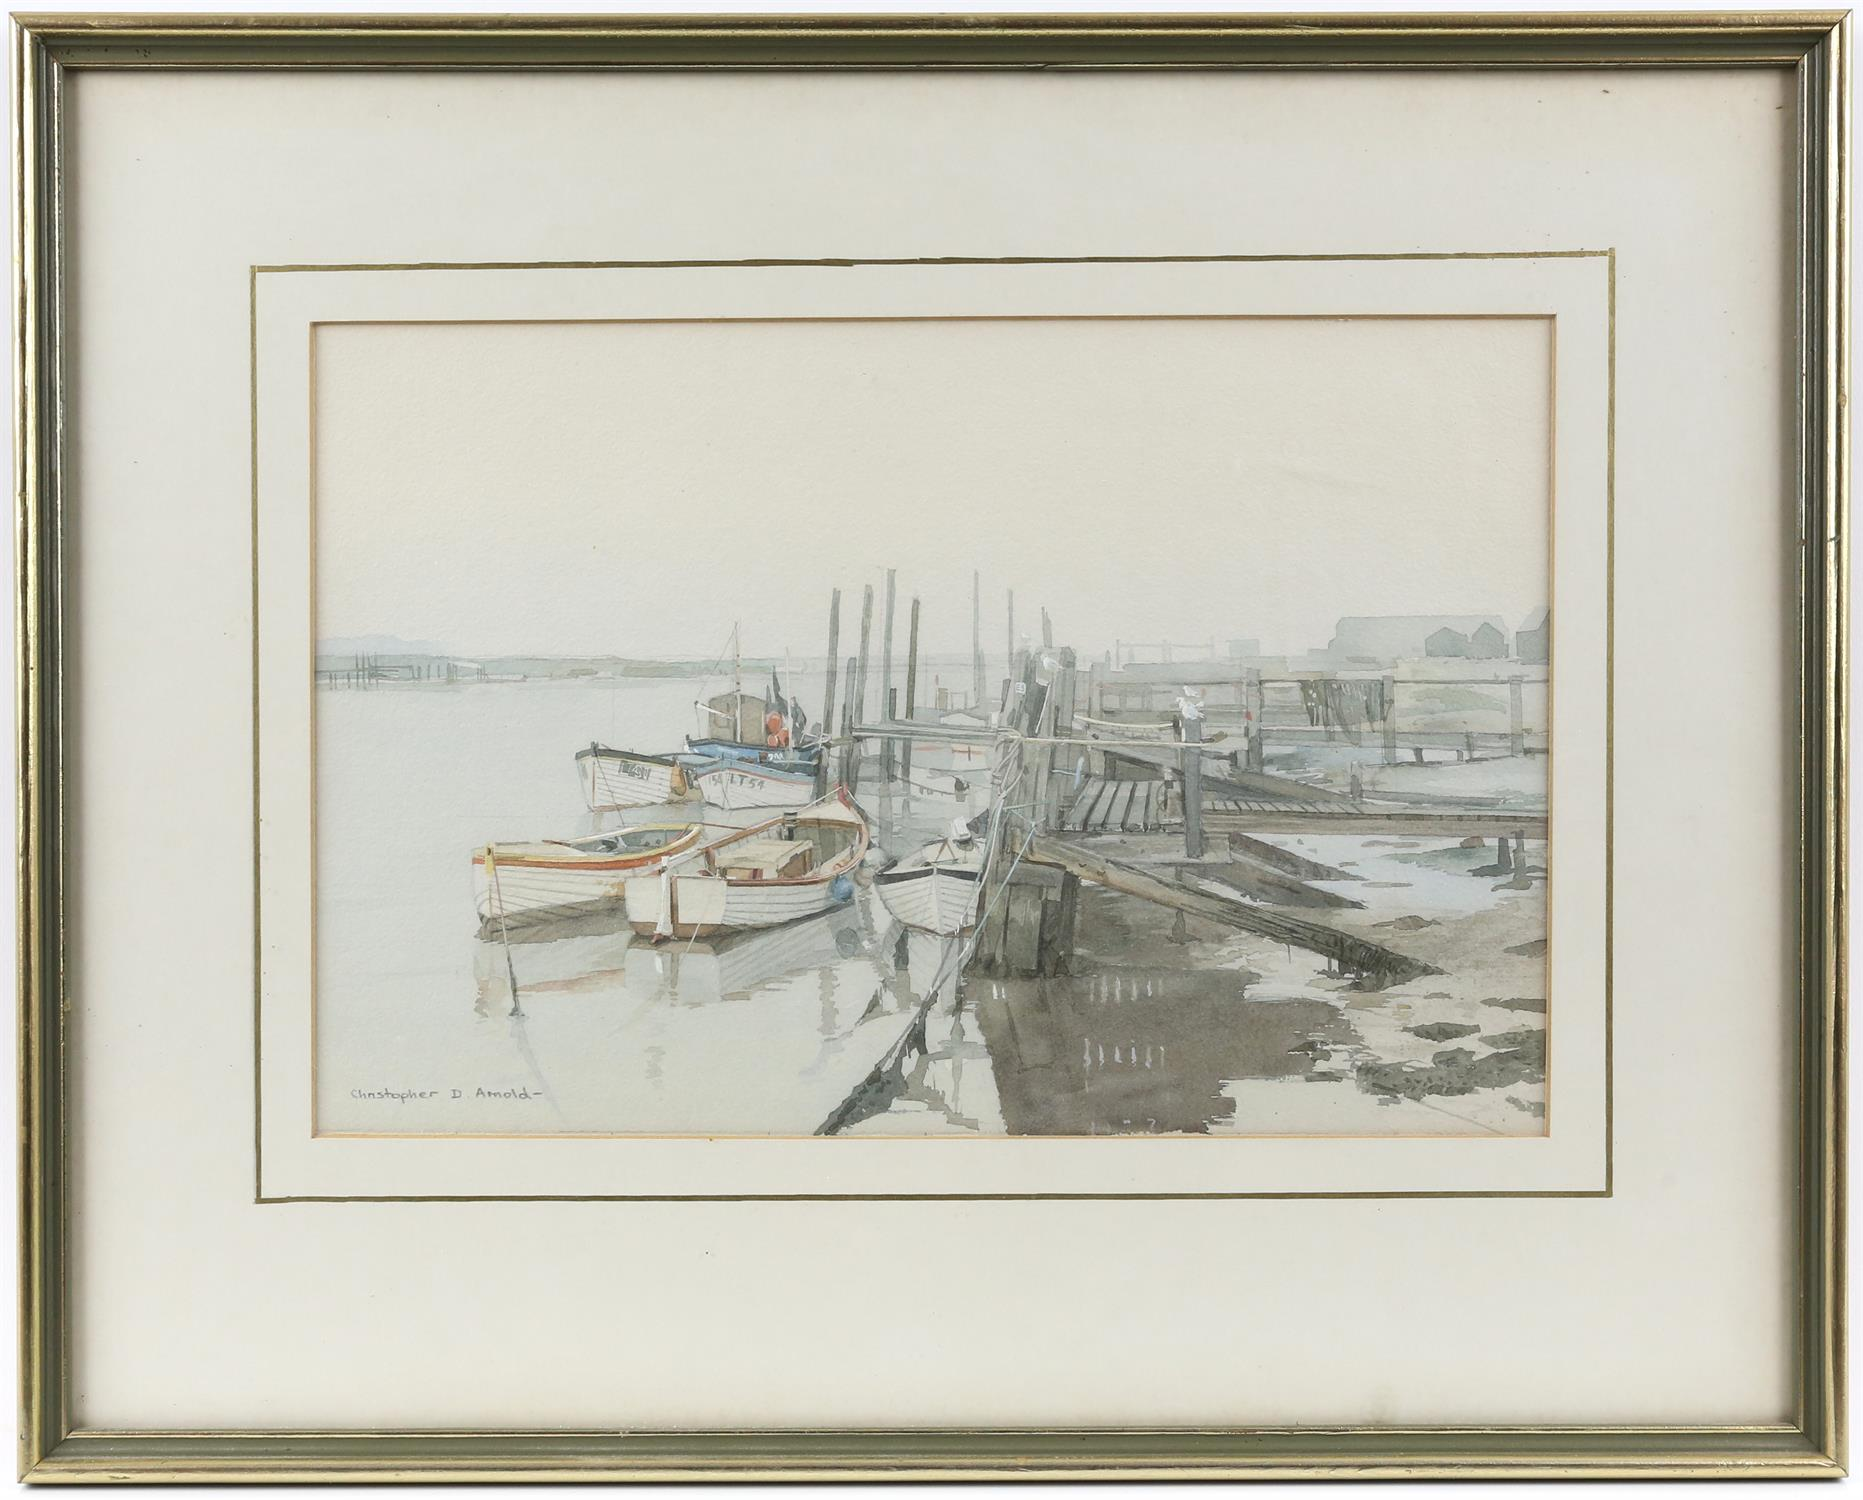 Christopher D Arnold (British, b. 1955), 'Fishing Boats, Southwold, Sussex', signed, watercolour, - Image 2 of 4